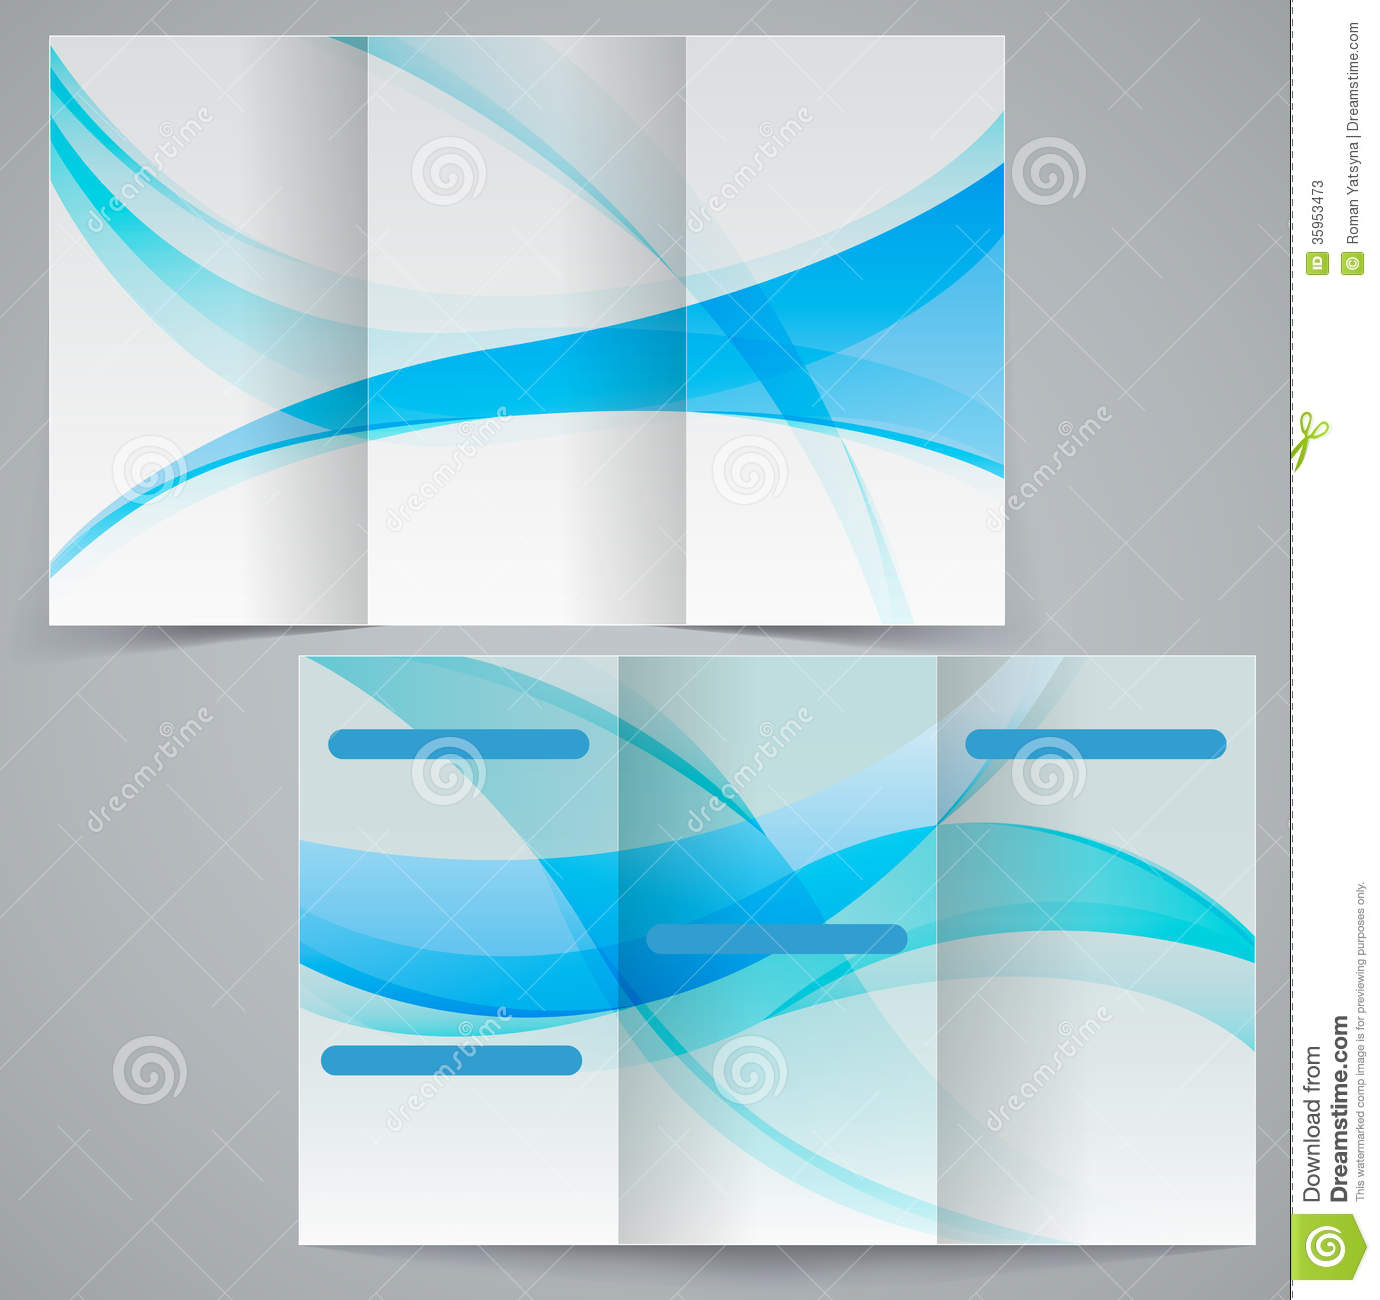 templates for brochure - tri fold business brochure template vector blue d stock